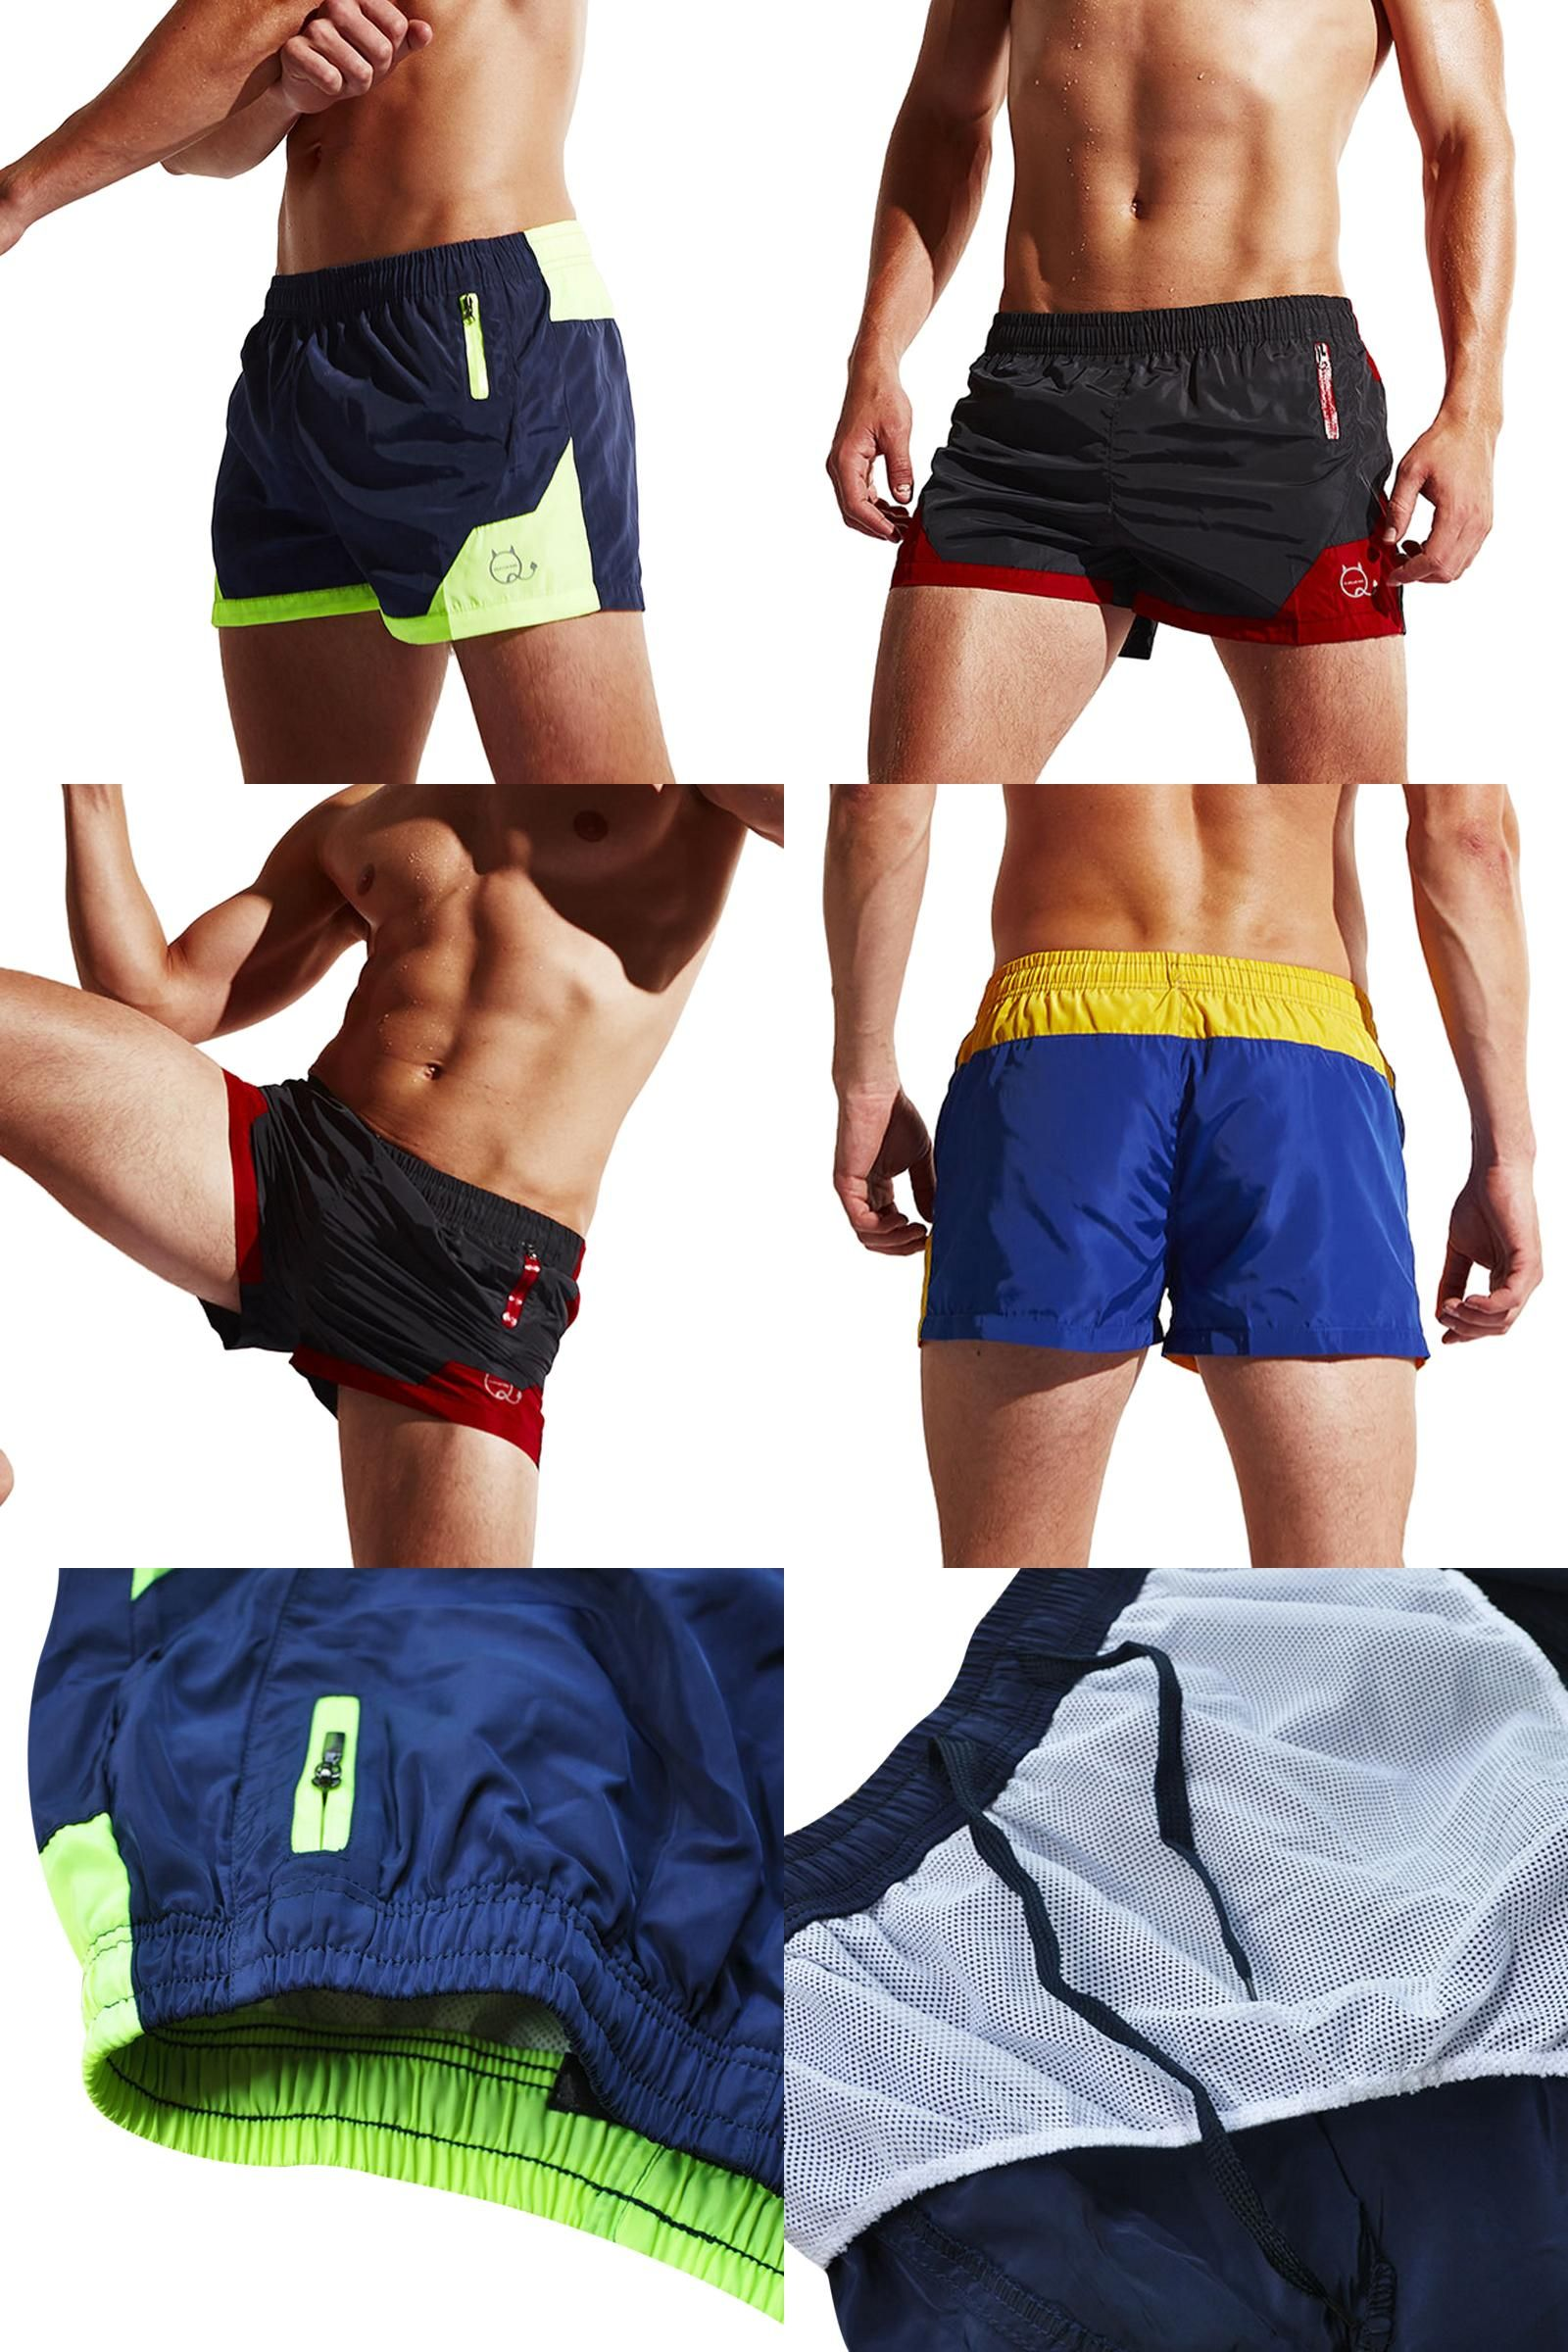 Men's Clothing Quick Dry Board Shorts Mens Beach Shorts Patchwork Color Summer Swimsuit Men Bathing Wear Sweatpants Board Short Plus Size In Short Supply